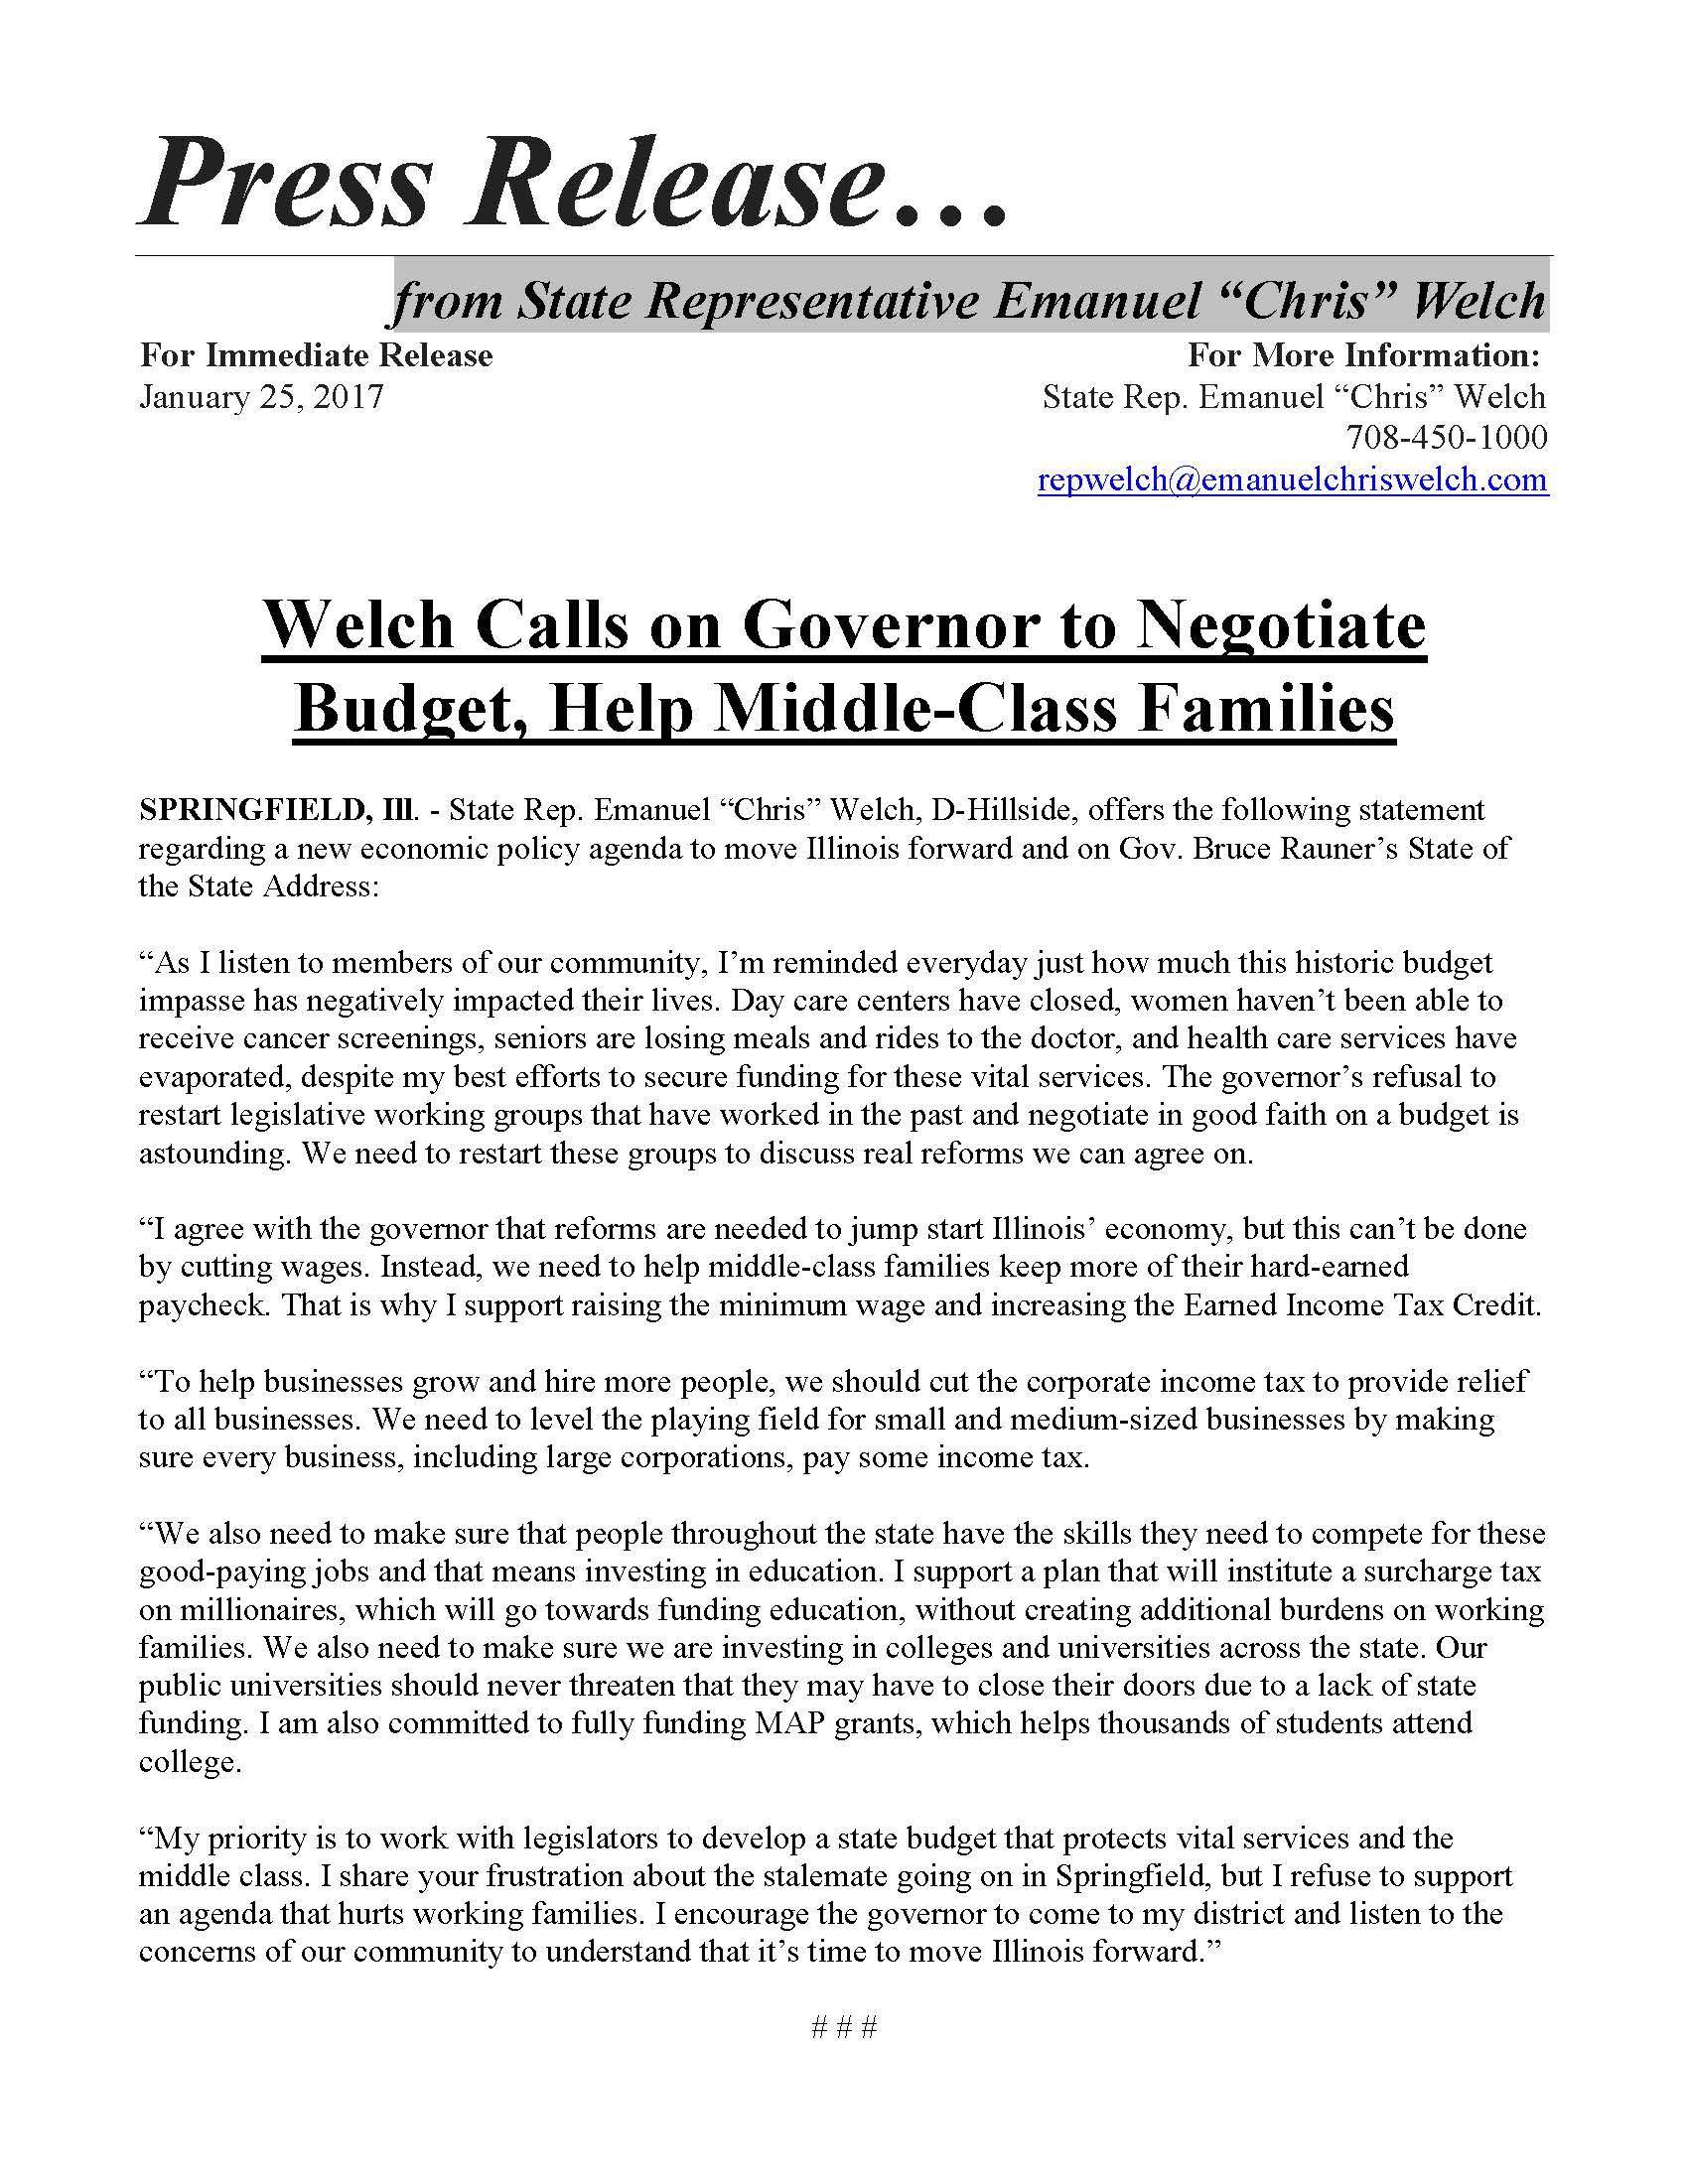 Welch Calls on Governor to Negotiate Budget, Help Middle-Class Families  (January 25, 2017)